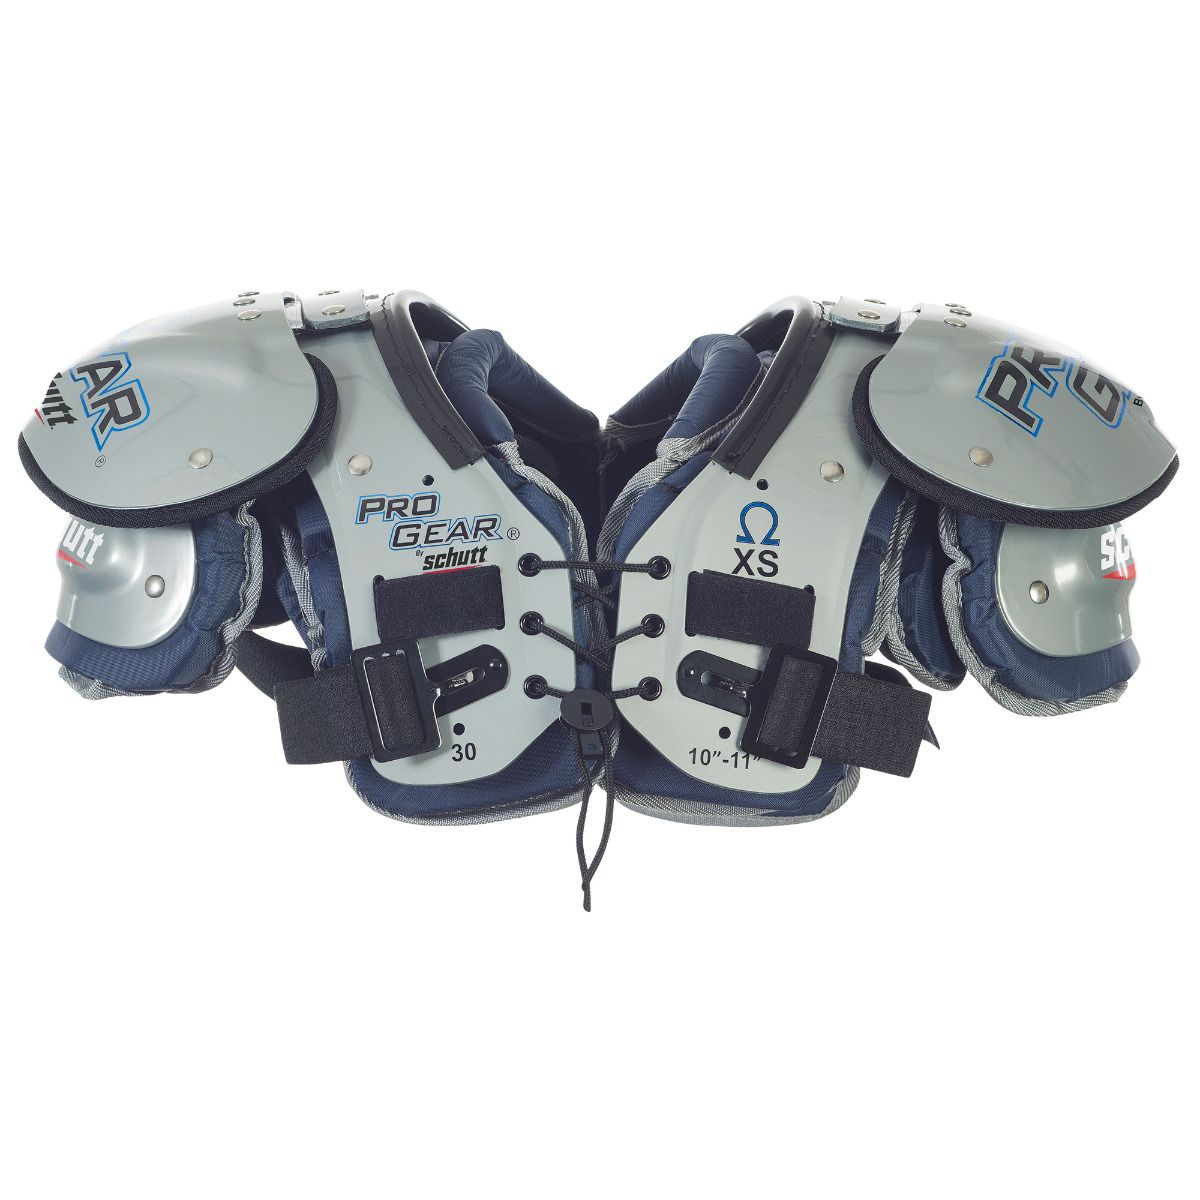 omega_youth_pro_gear_shoulder_pad_front.jpg